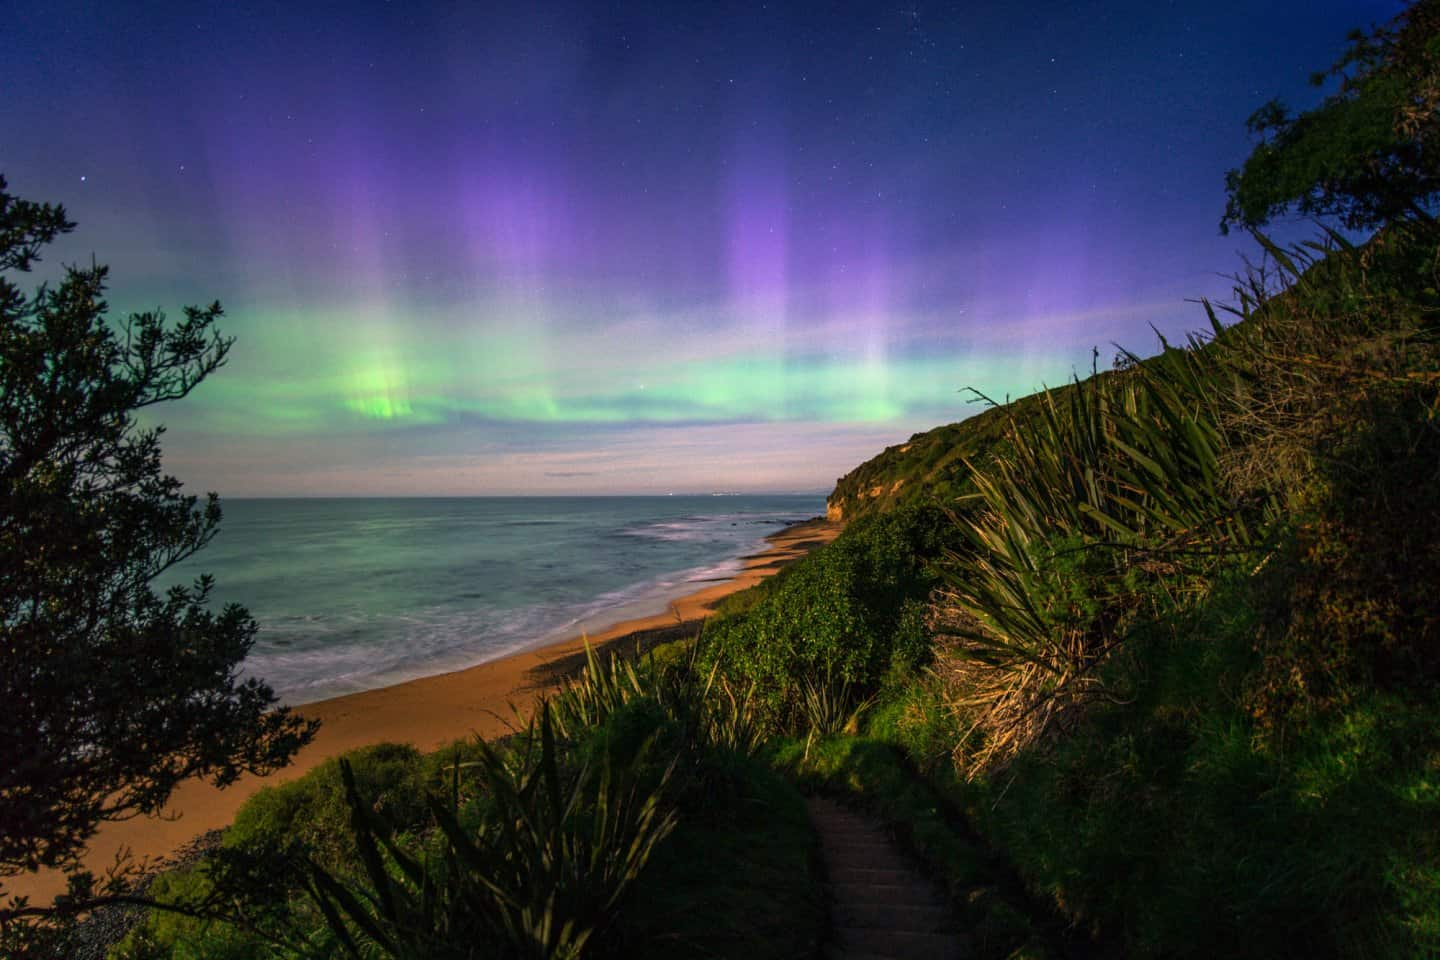 Aurora Australis Photography taken on a beach in New Zealand